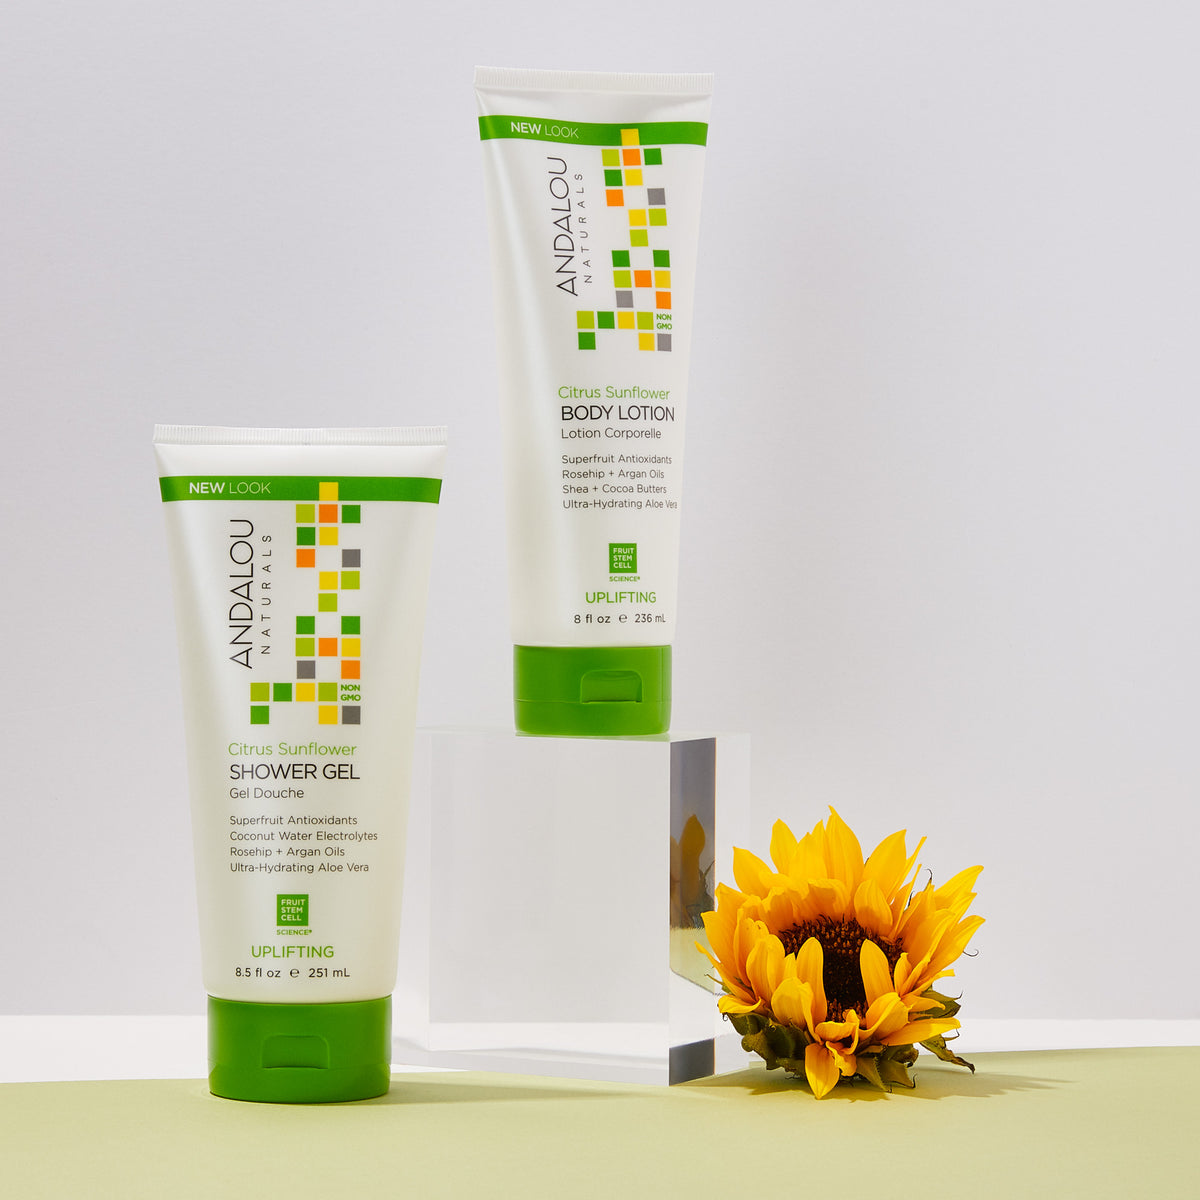 Citrus Sunflower Uplifting Body Lotion - Andalou Naturals US